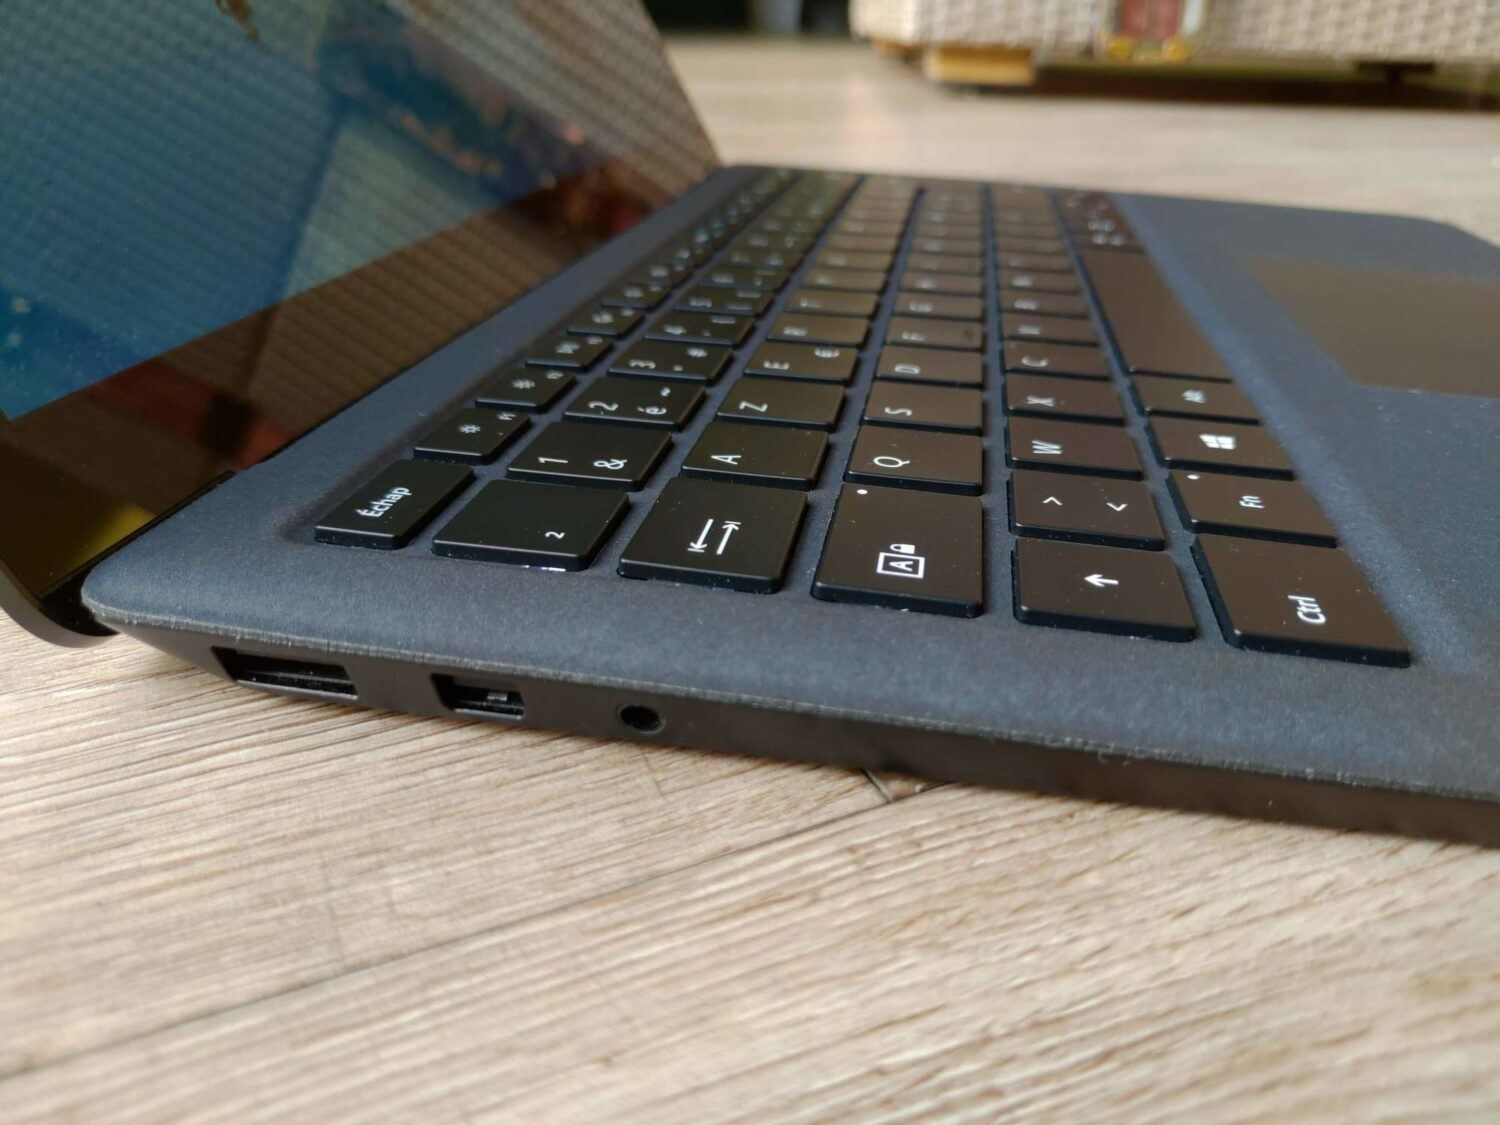 USB-C USB-A Microsoft Surface  Laptop 2